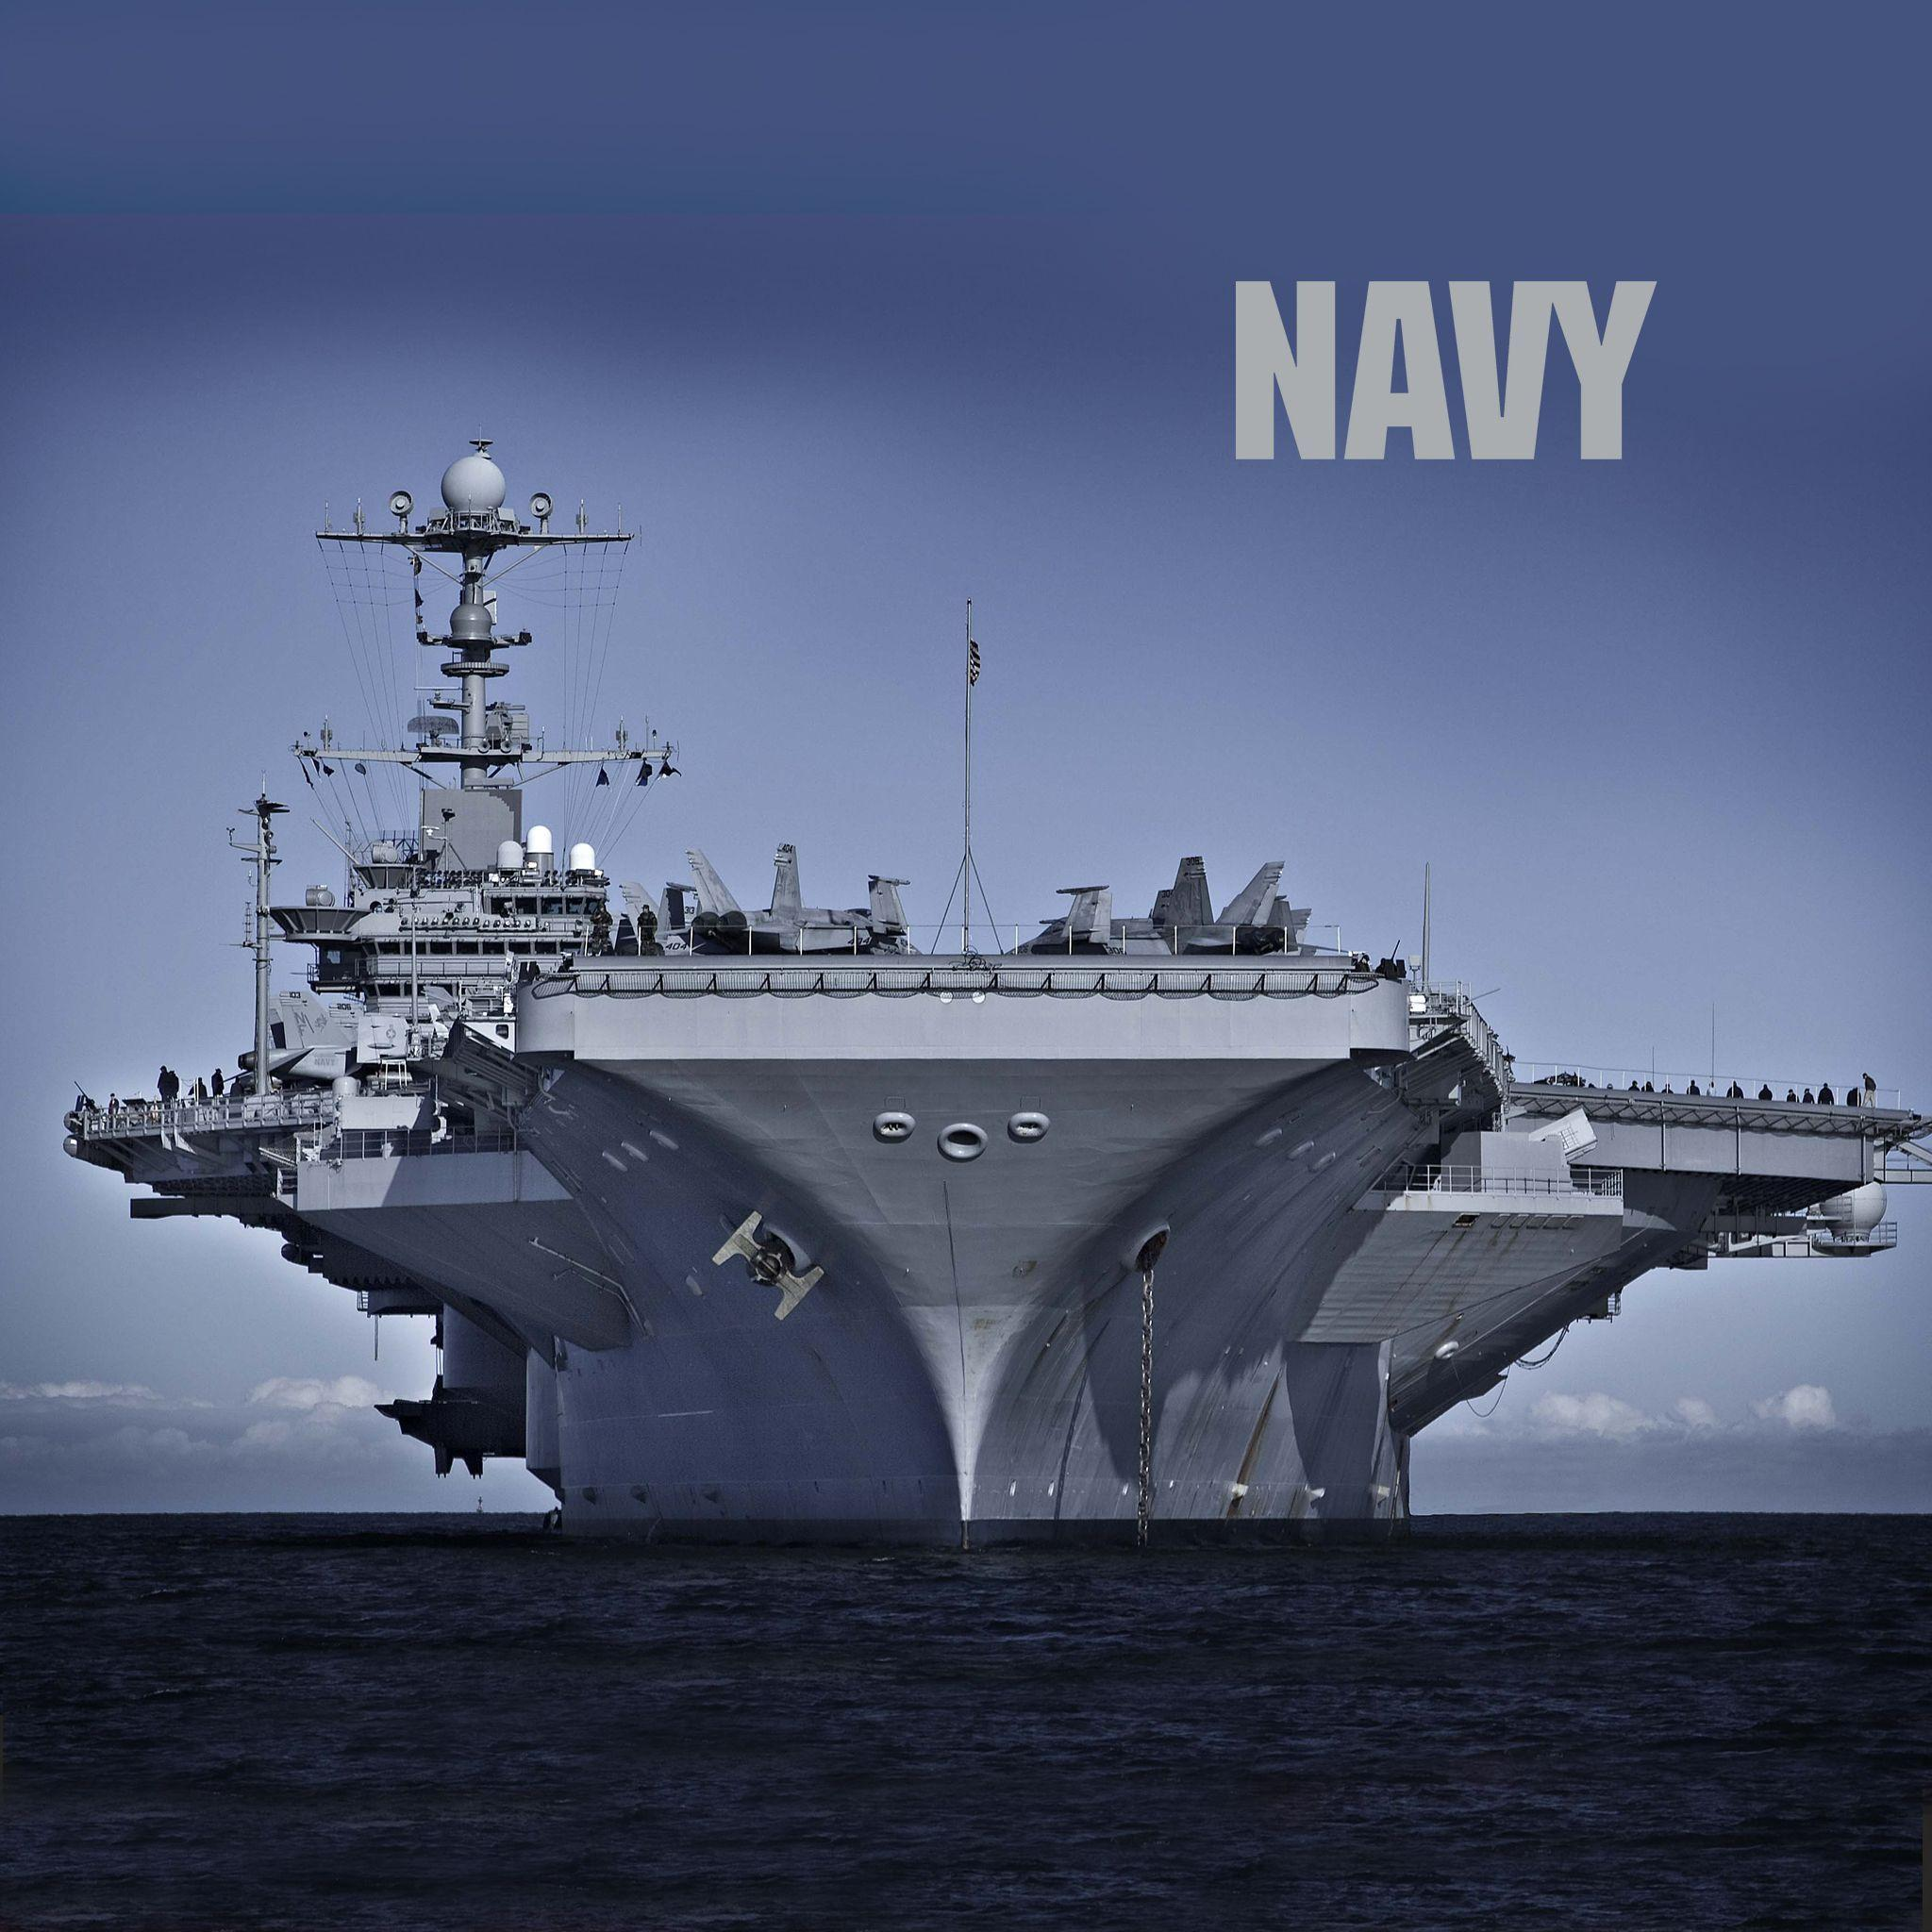 Navy Ship Wallpapers Group